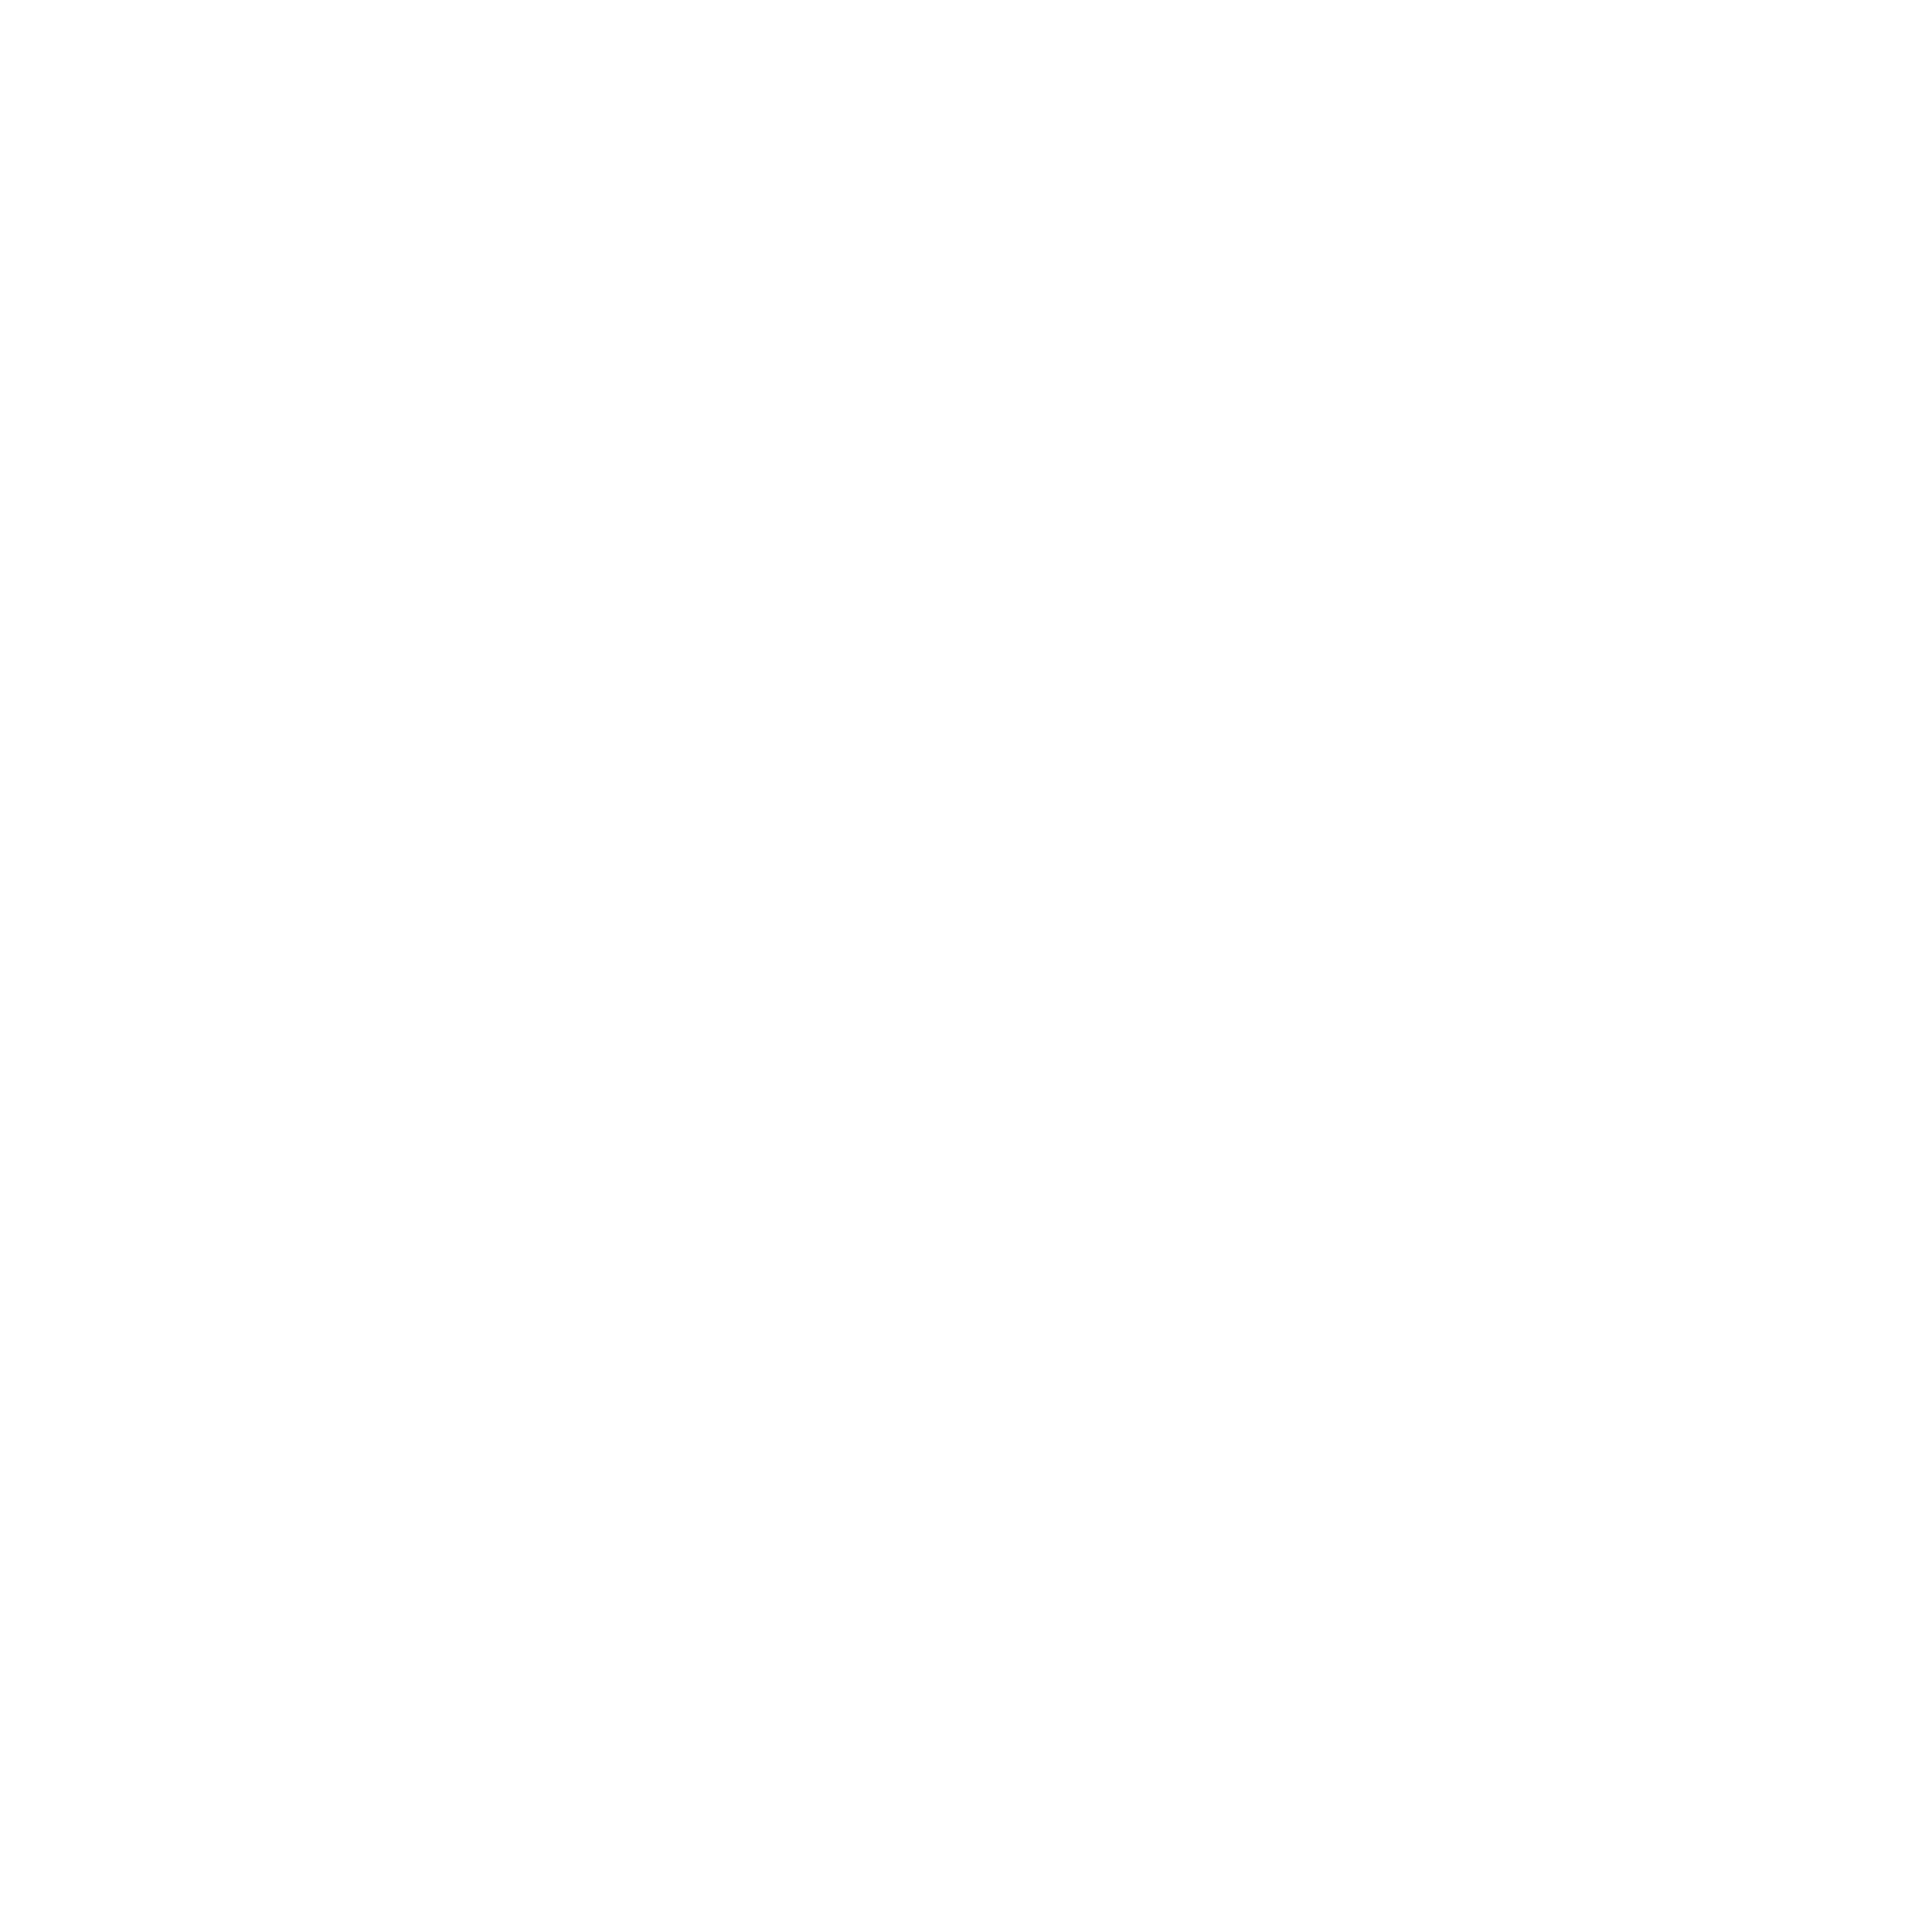 Assured Labs, Inc.